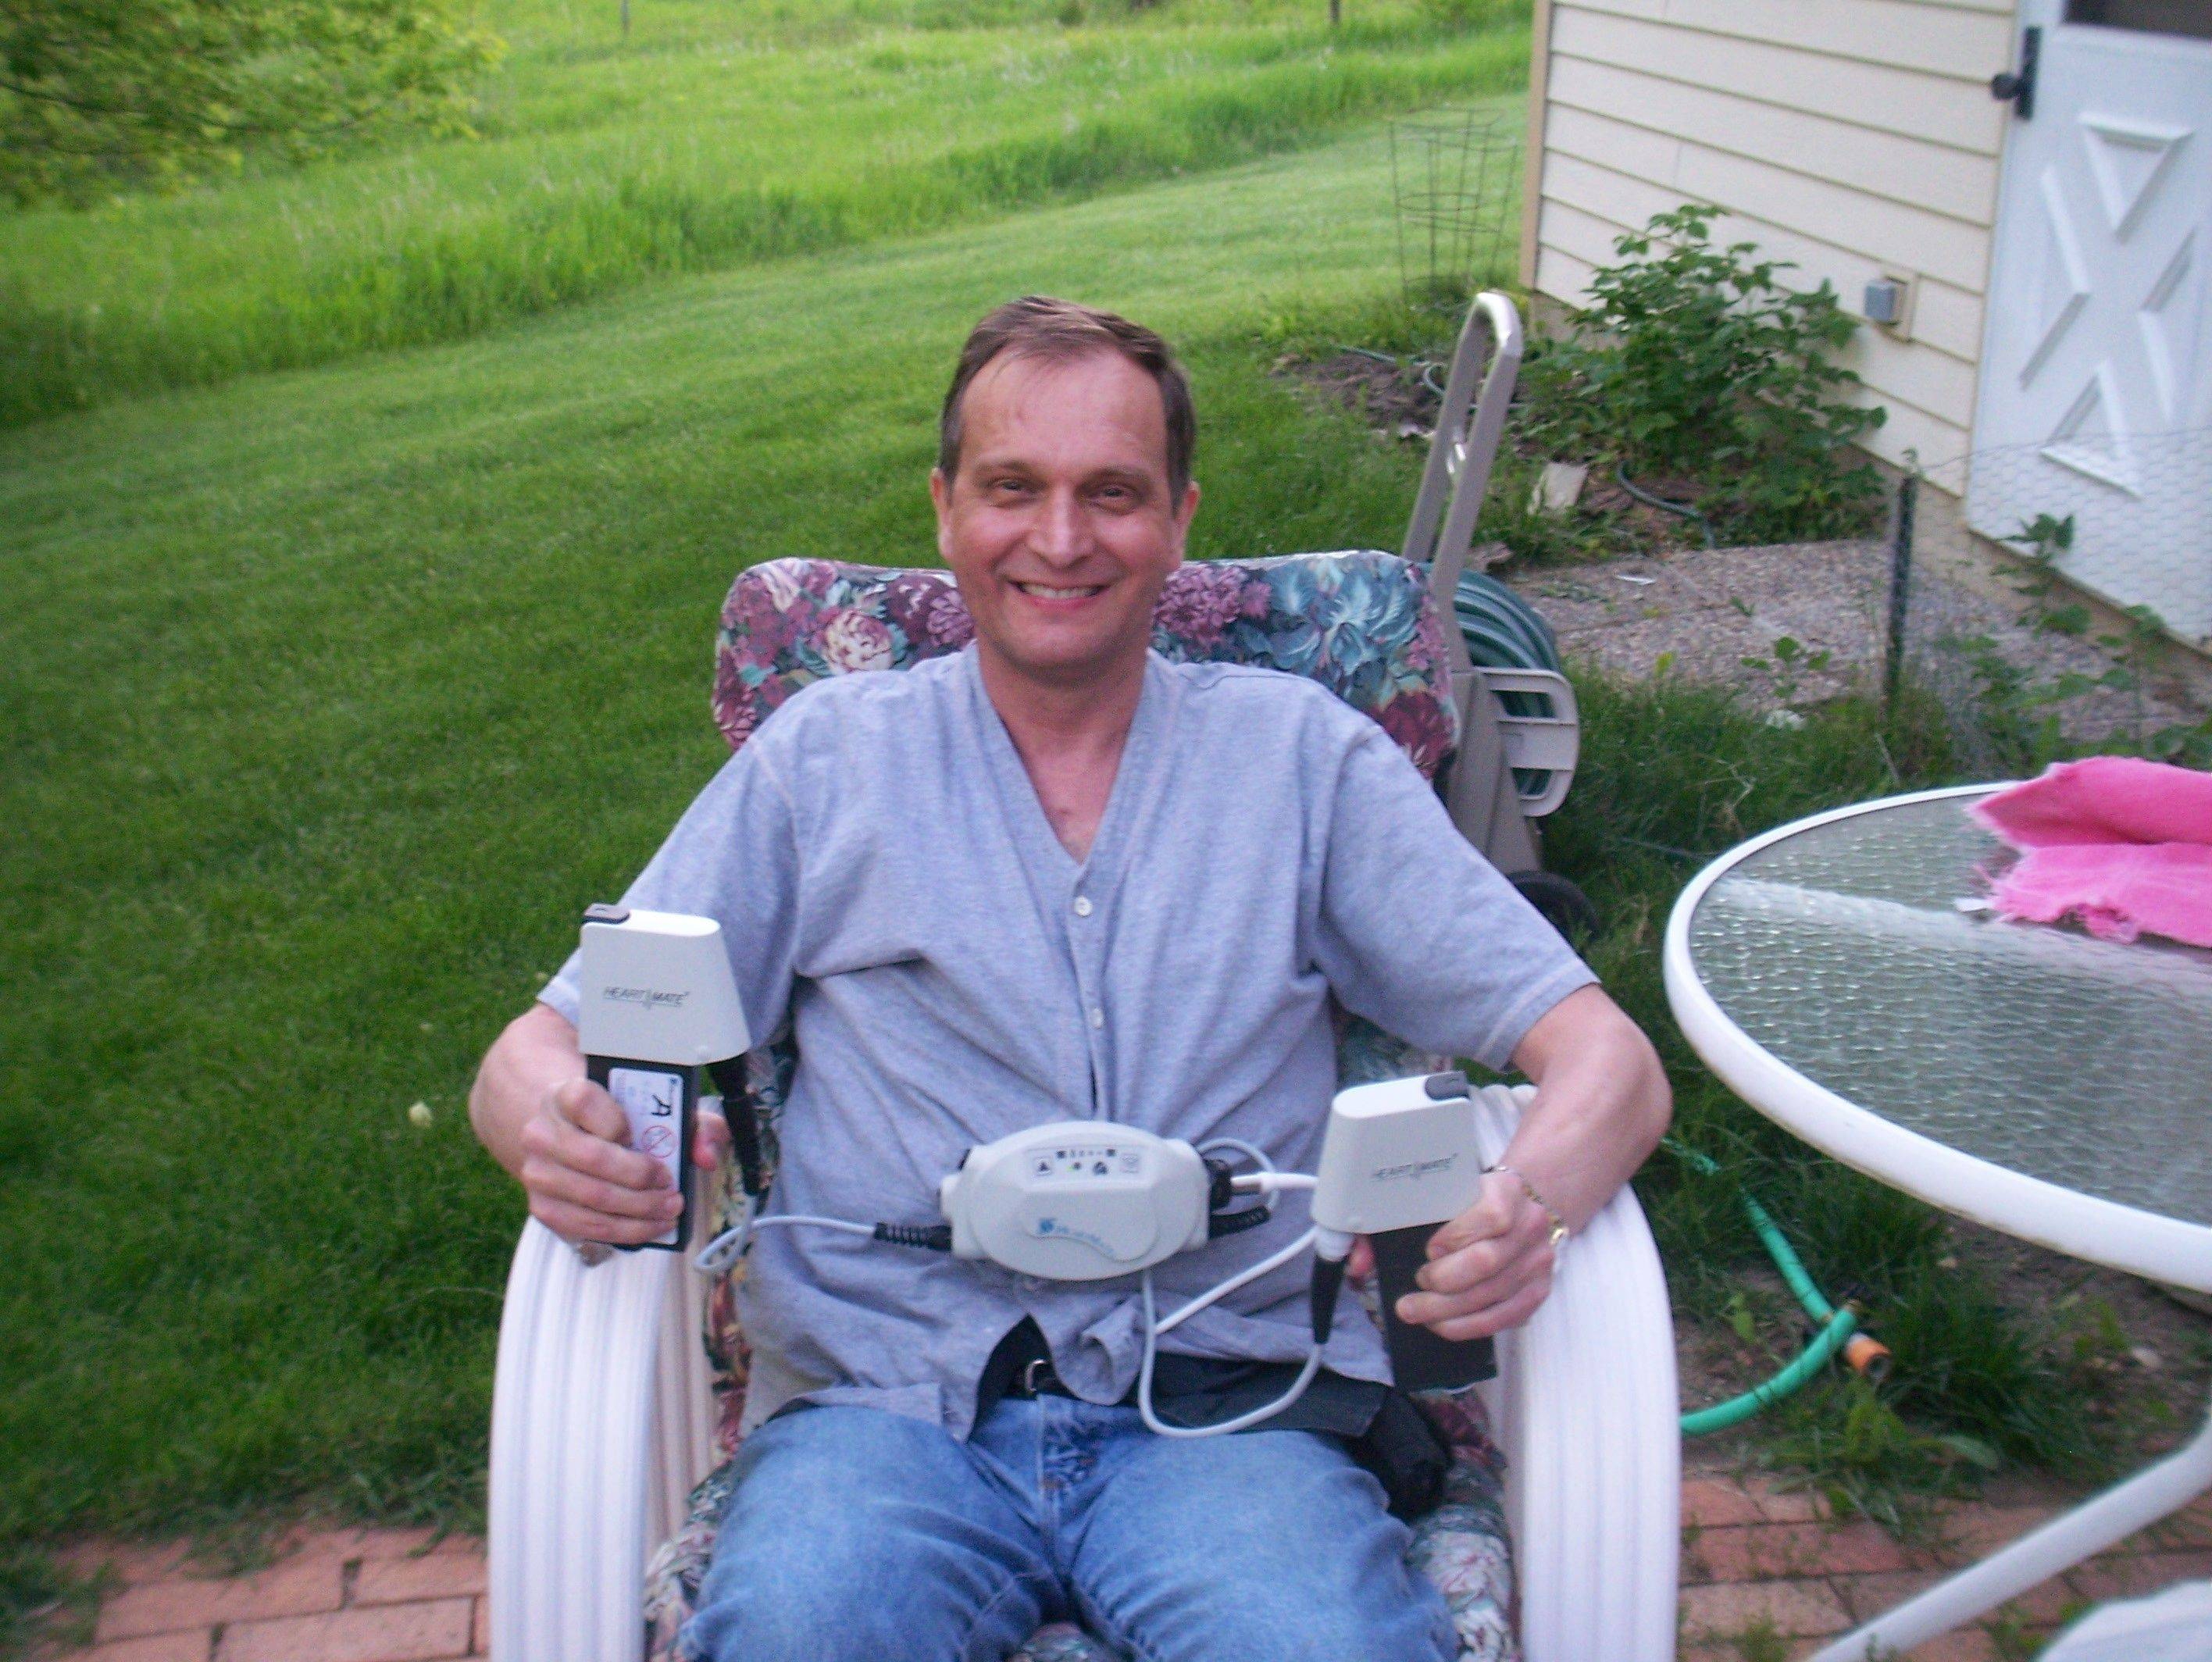 Kevin Lue, of Bartlett, sits with his VAD, a ventricular assist device, which pumped his ailing heart.